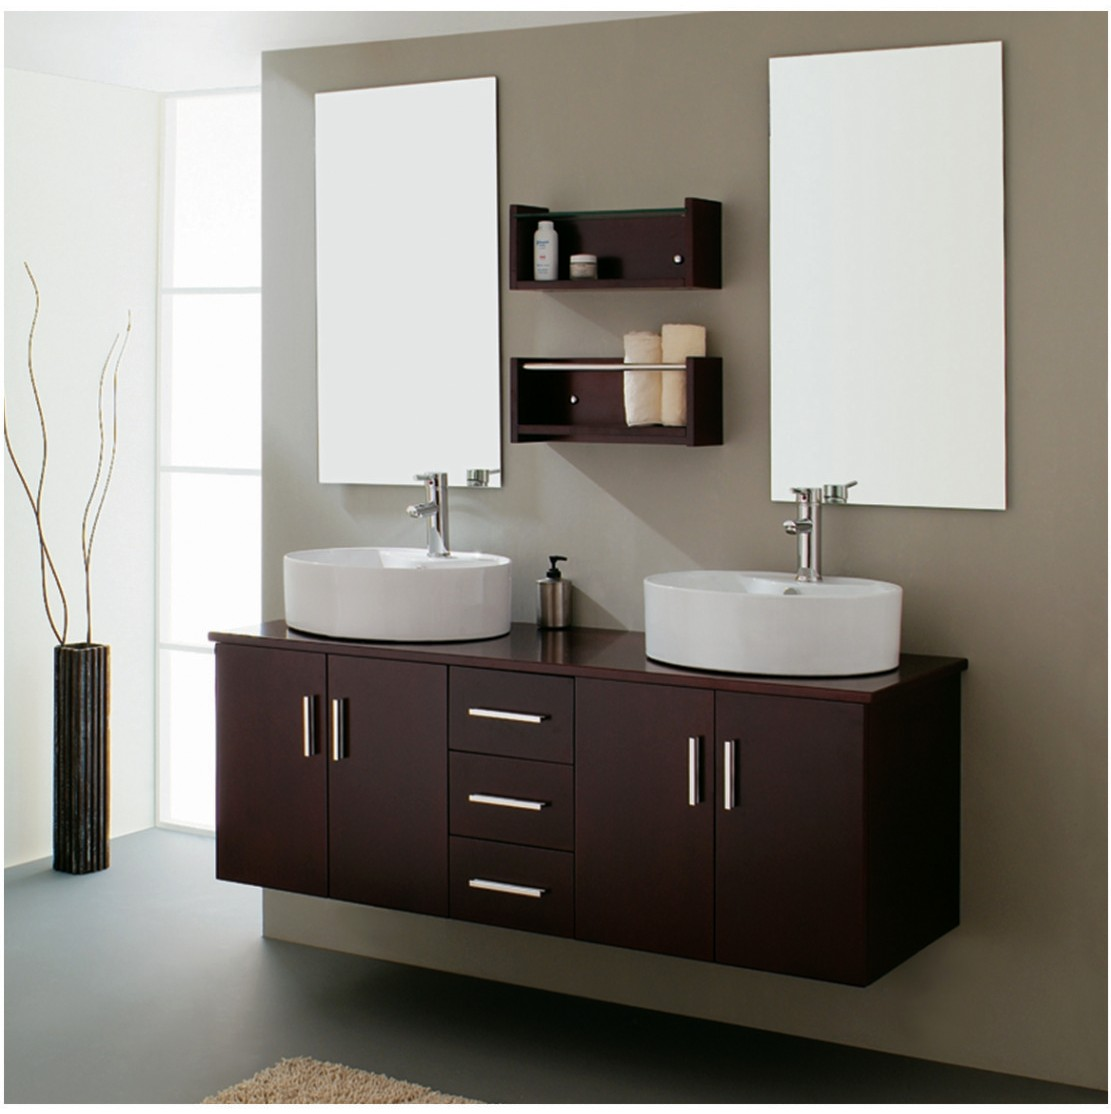 Modern bathroom double sink home decorating ideas for Bathroom vanities design ideas